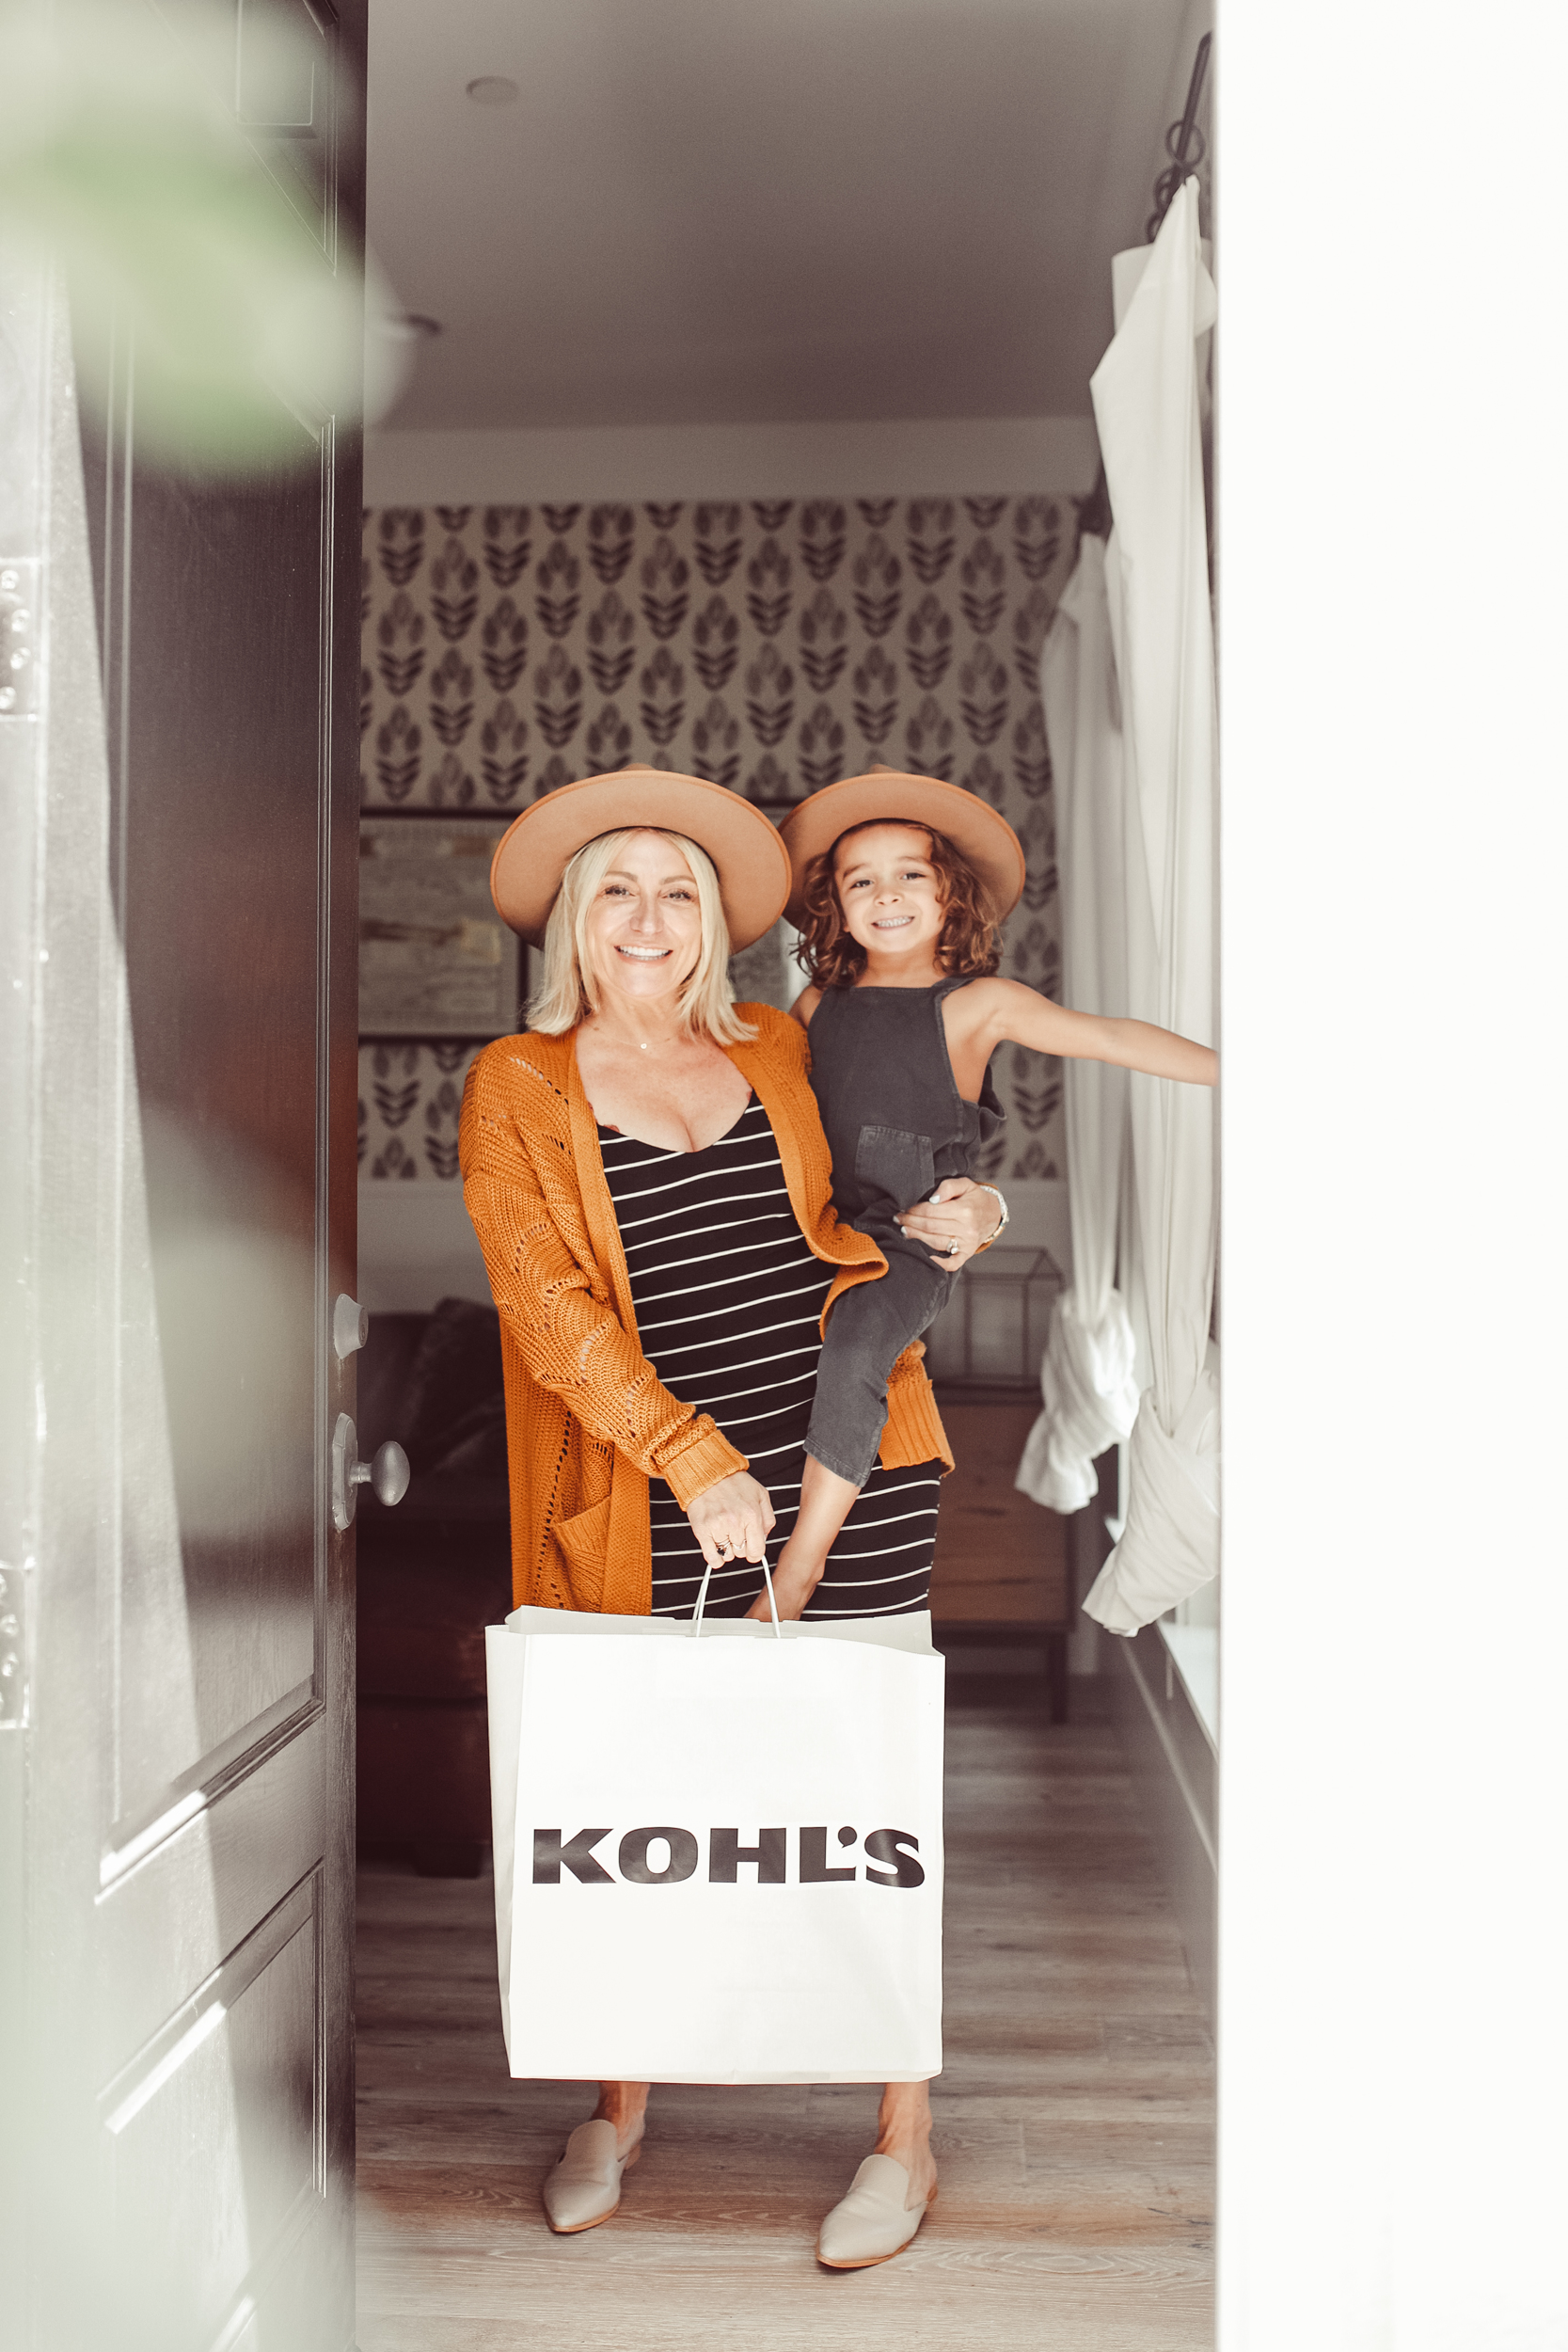 mom and son with kohl's shopping bag